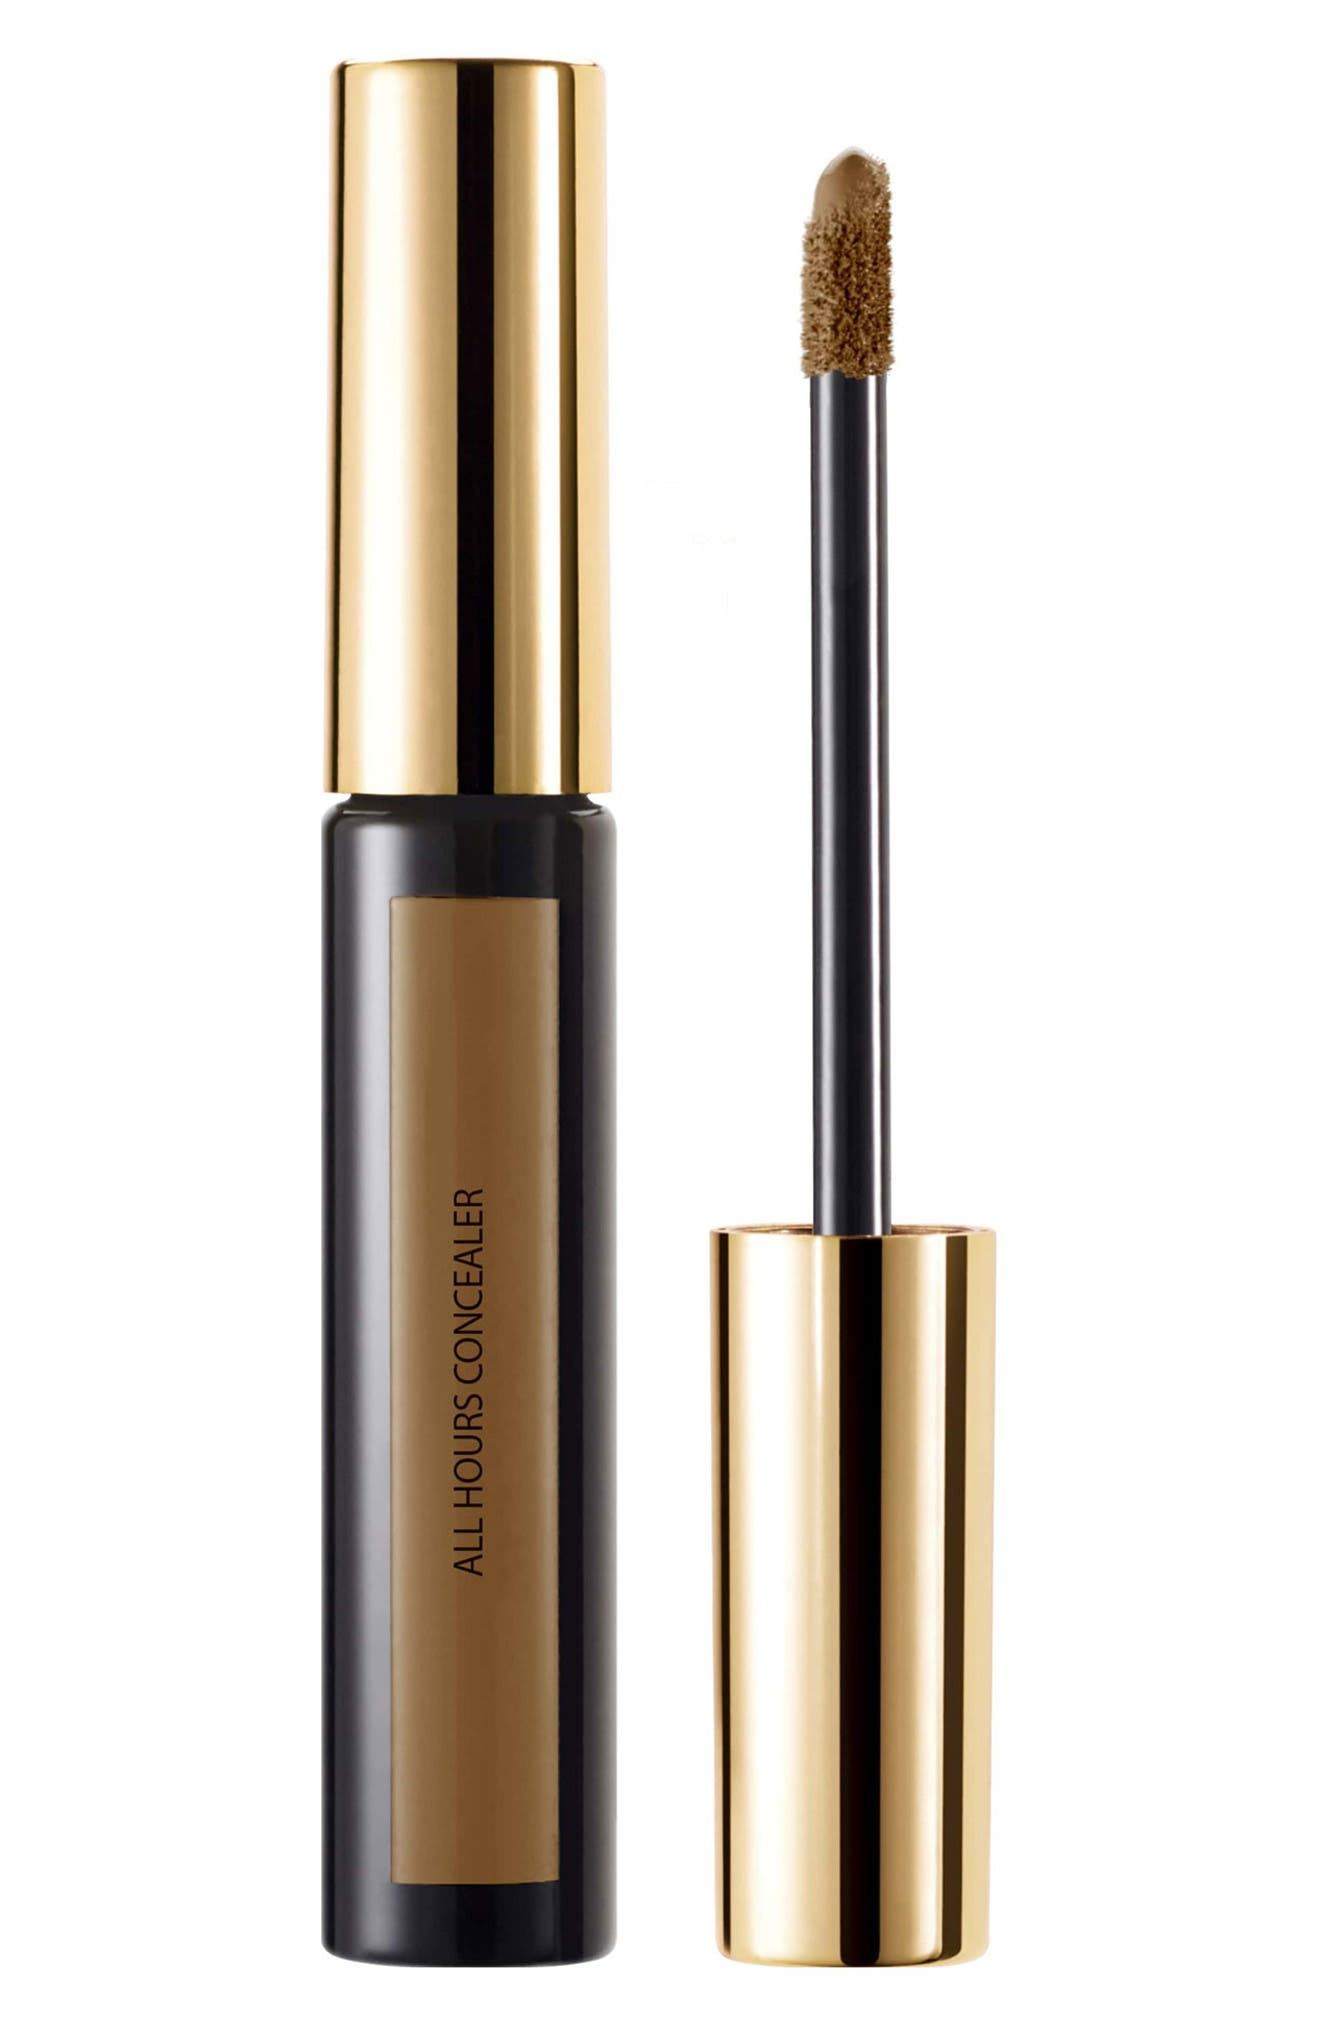 Yves Saint Laurent All Hours Concealer - 7 Coffee